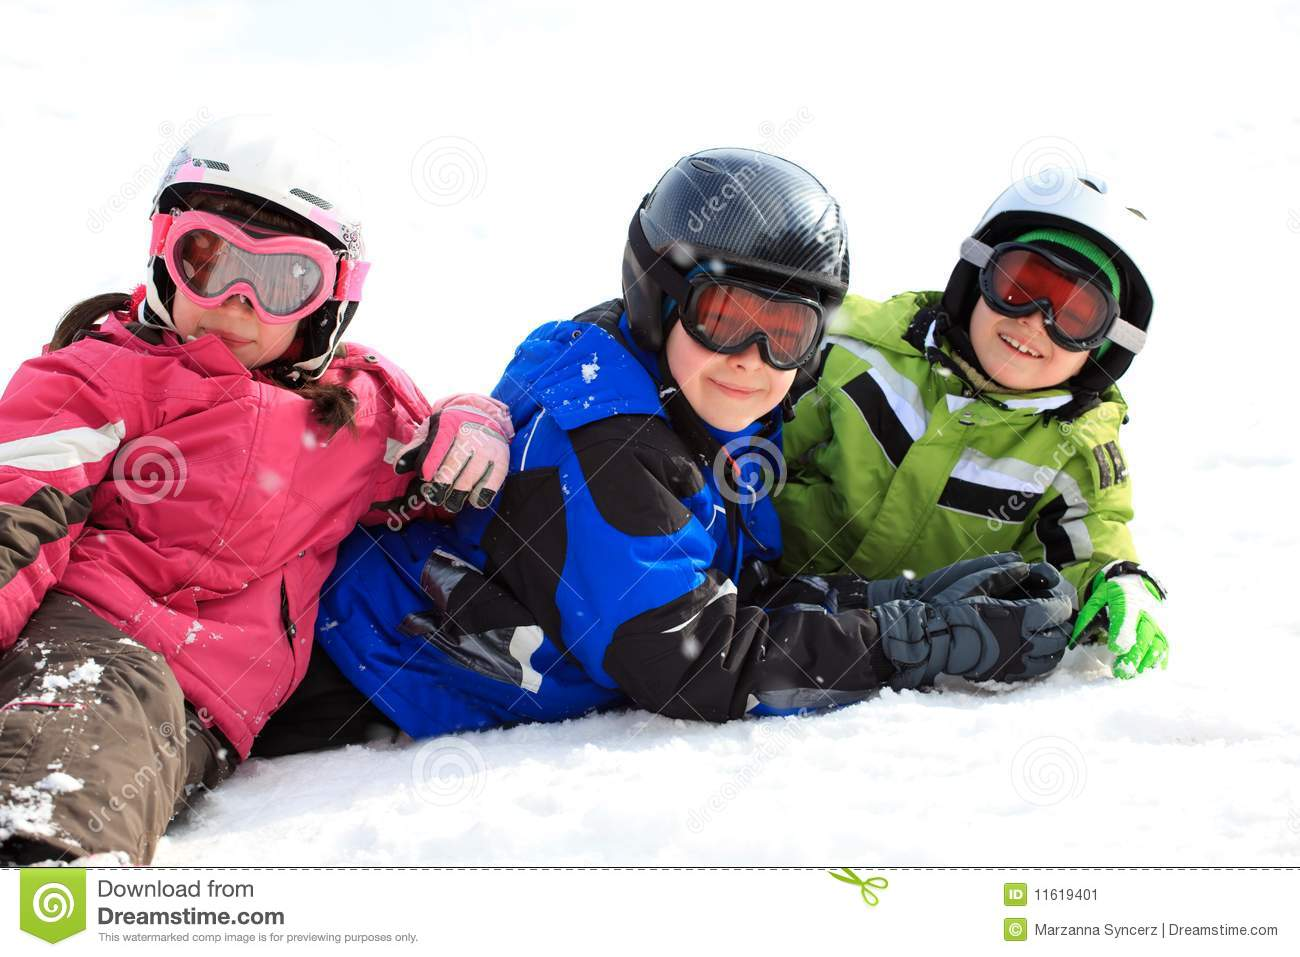 b77f38c17c34 Kids in snow gear stock image. Image of brother